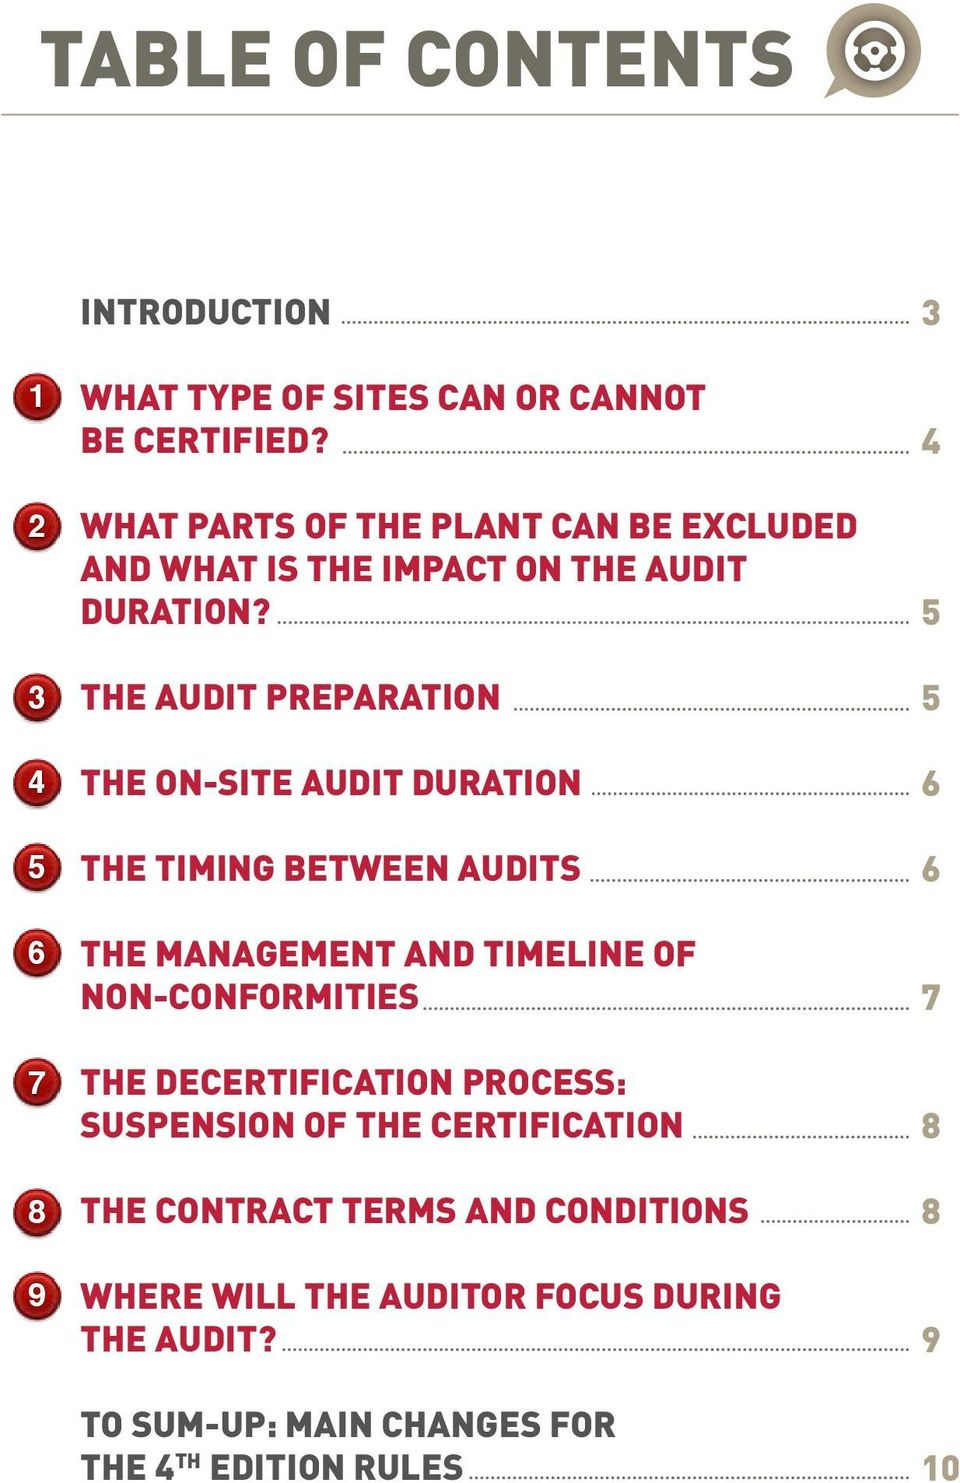 THE AUDIT PREPARATION THE ON-SITE AUDIT DURATION THE TIMING BETWEEN AUDITS THE MANAGEMENT AND TIMELINE OF NON-CONFORMITIES THE